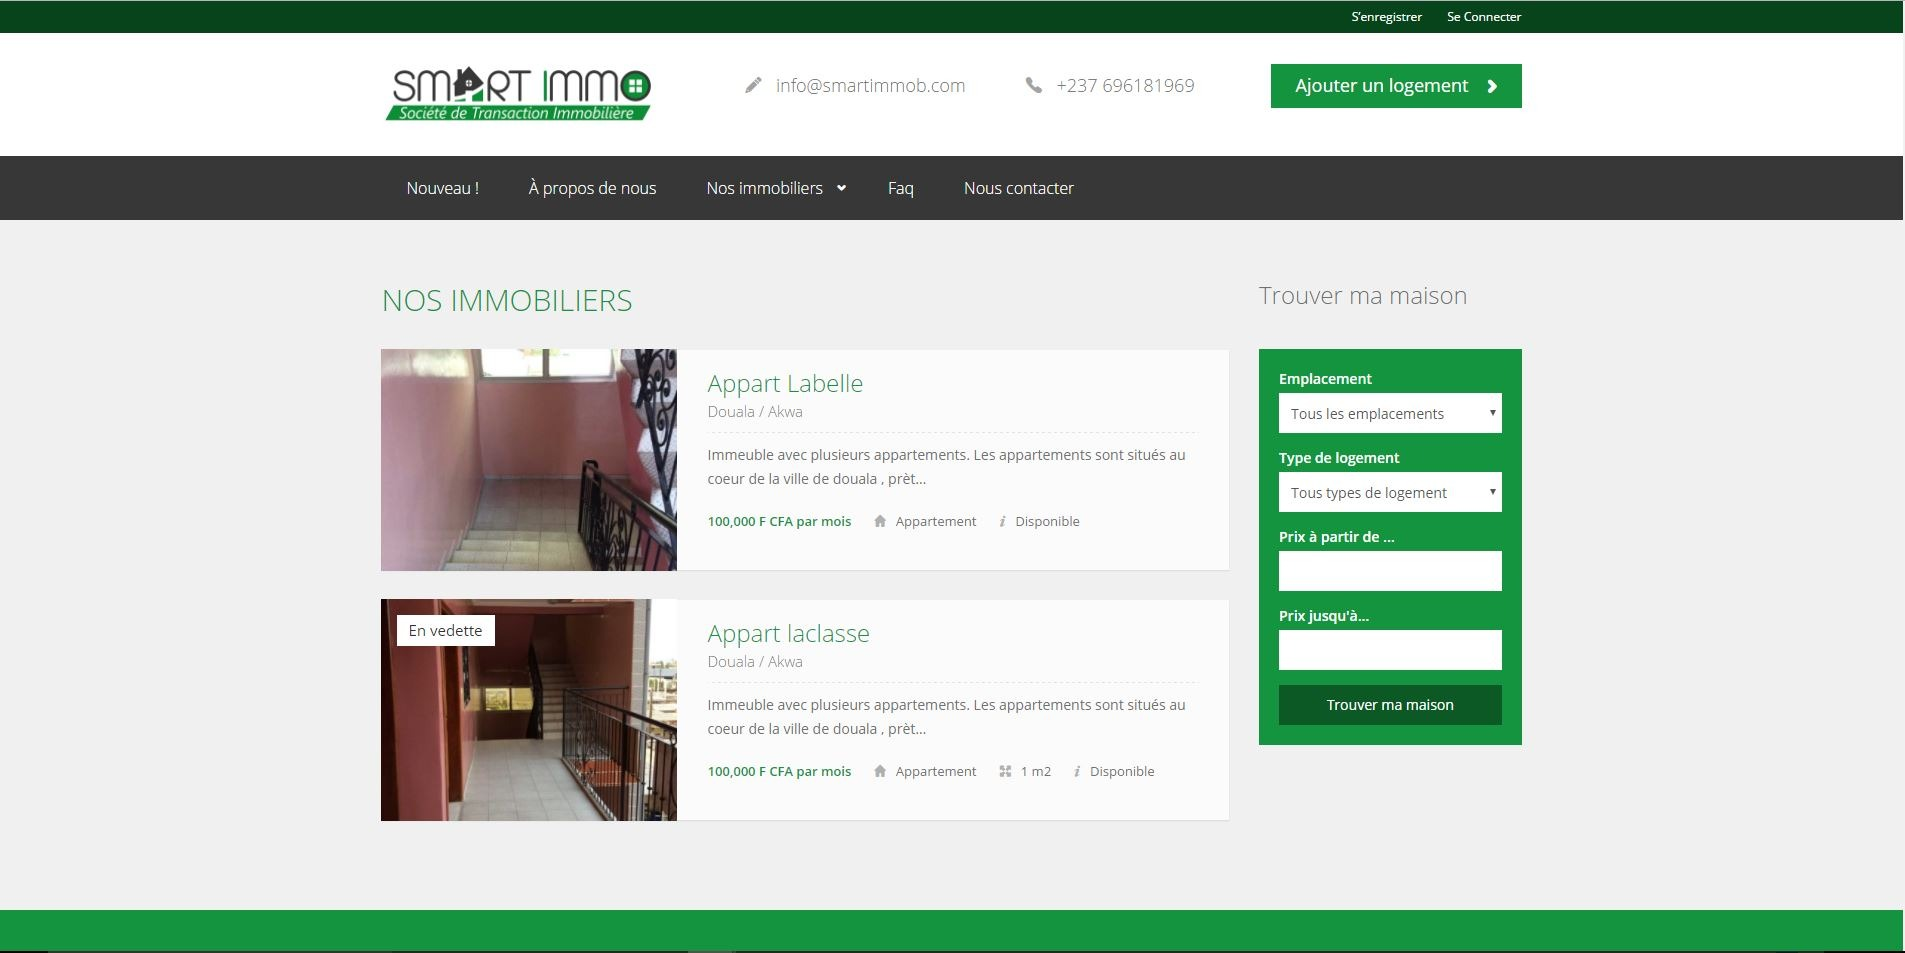 Agence web - Marketing digital - création site web - Protai-in -smart-immob